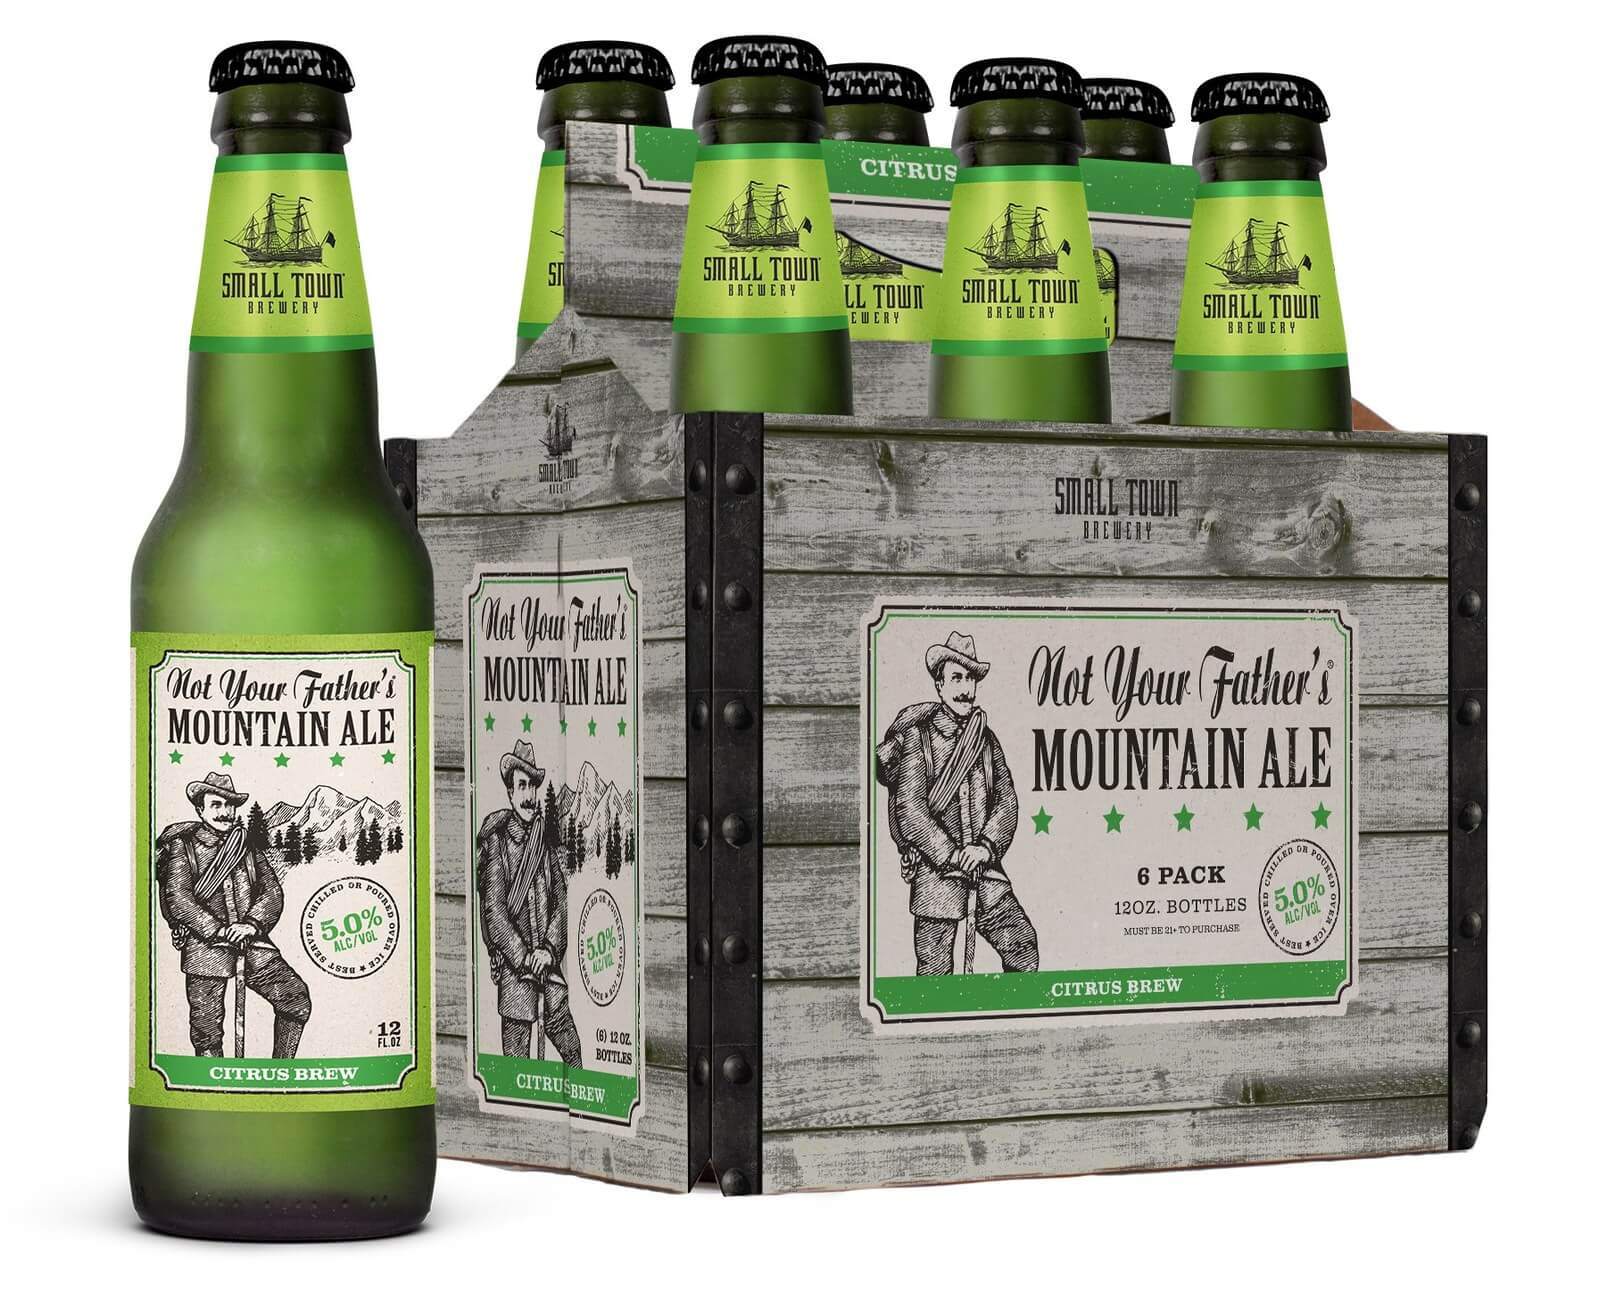 Small Town Brewery announces Not Your Father's Mountain Ale - What's Shakin' week of July 24